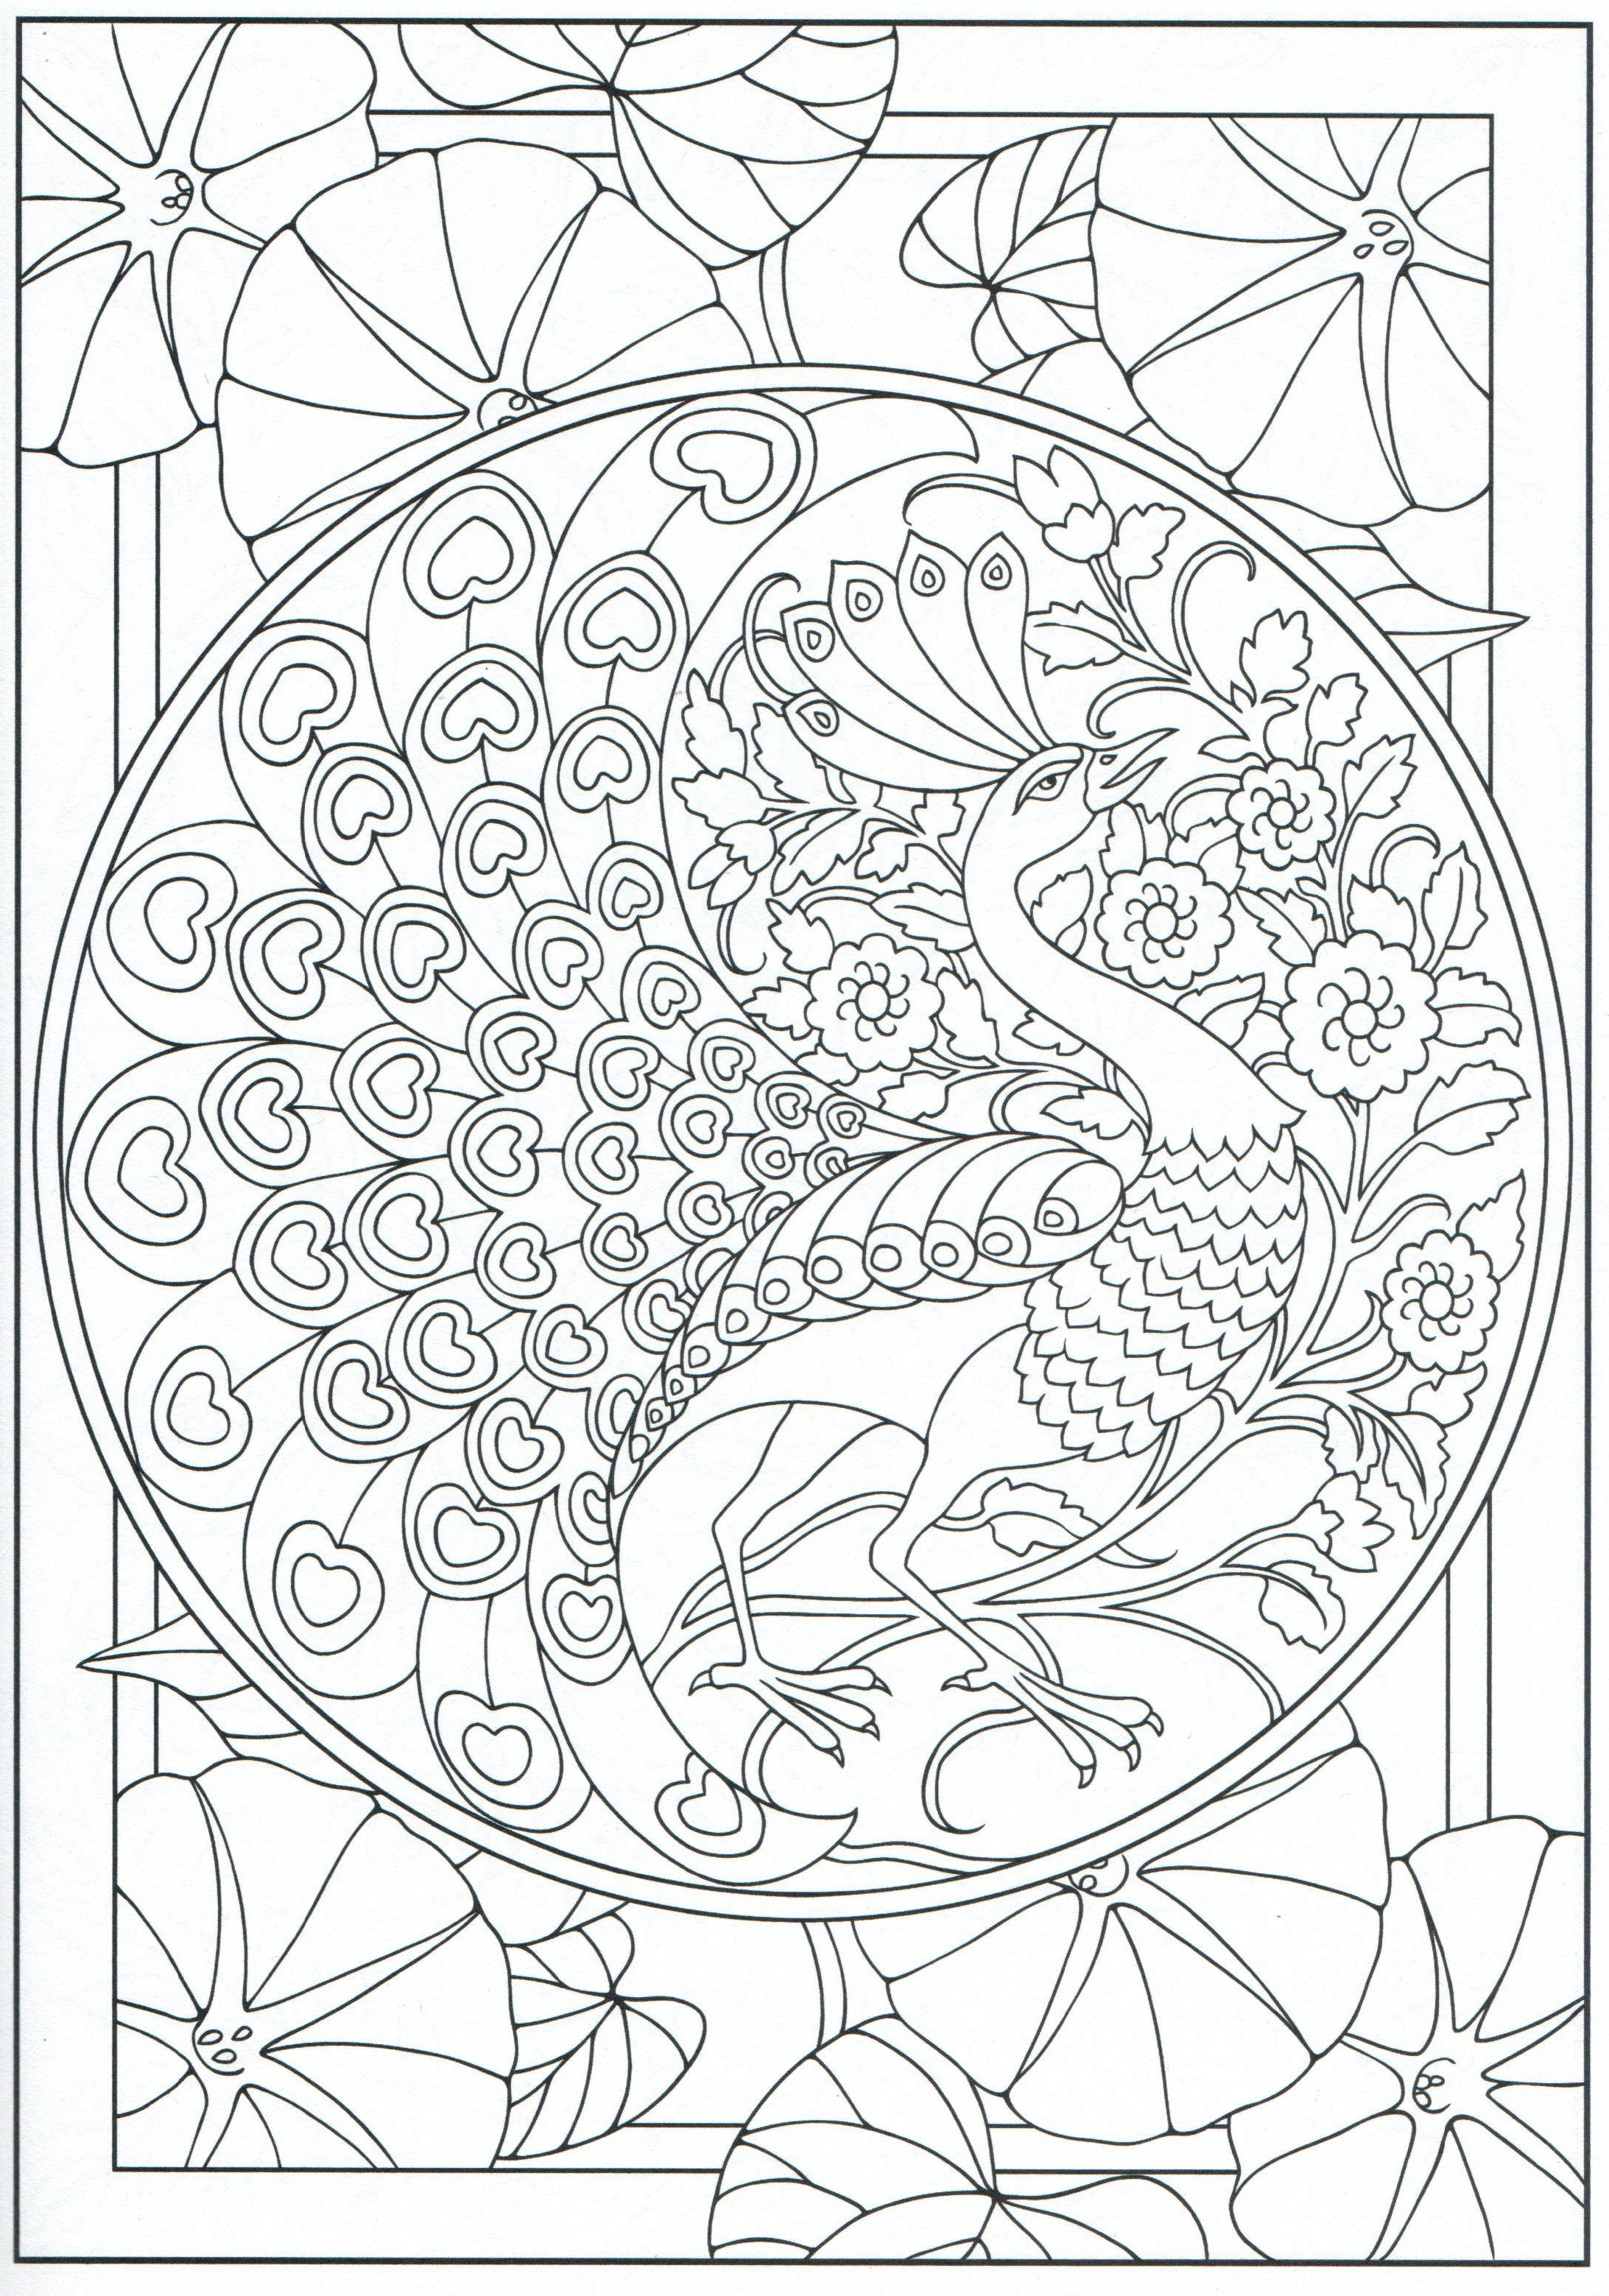 Peacock Coloring Page For Adults 11 31 Coloring Pages Designs